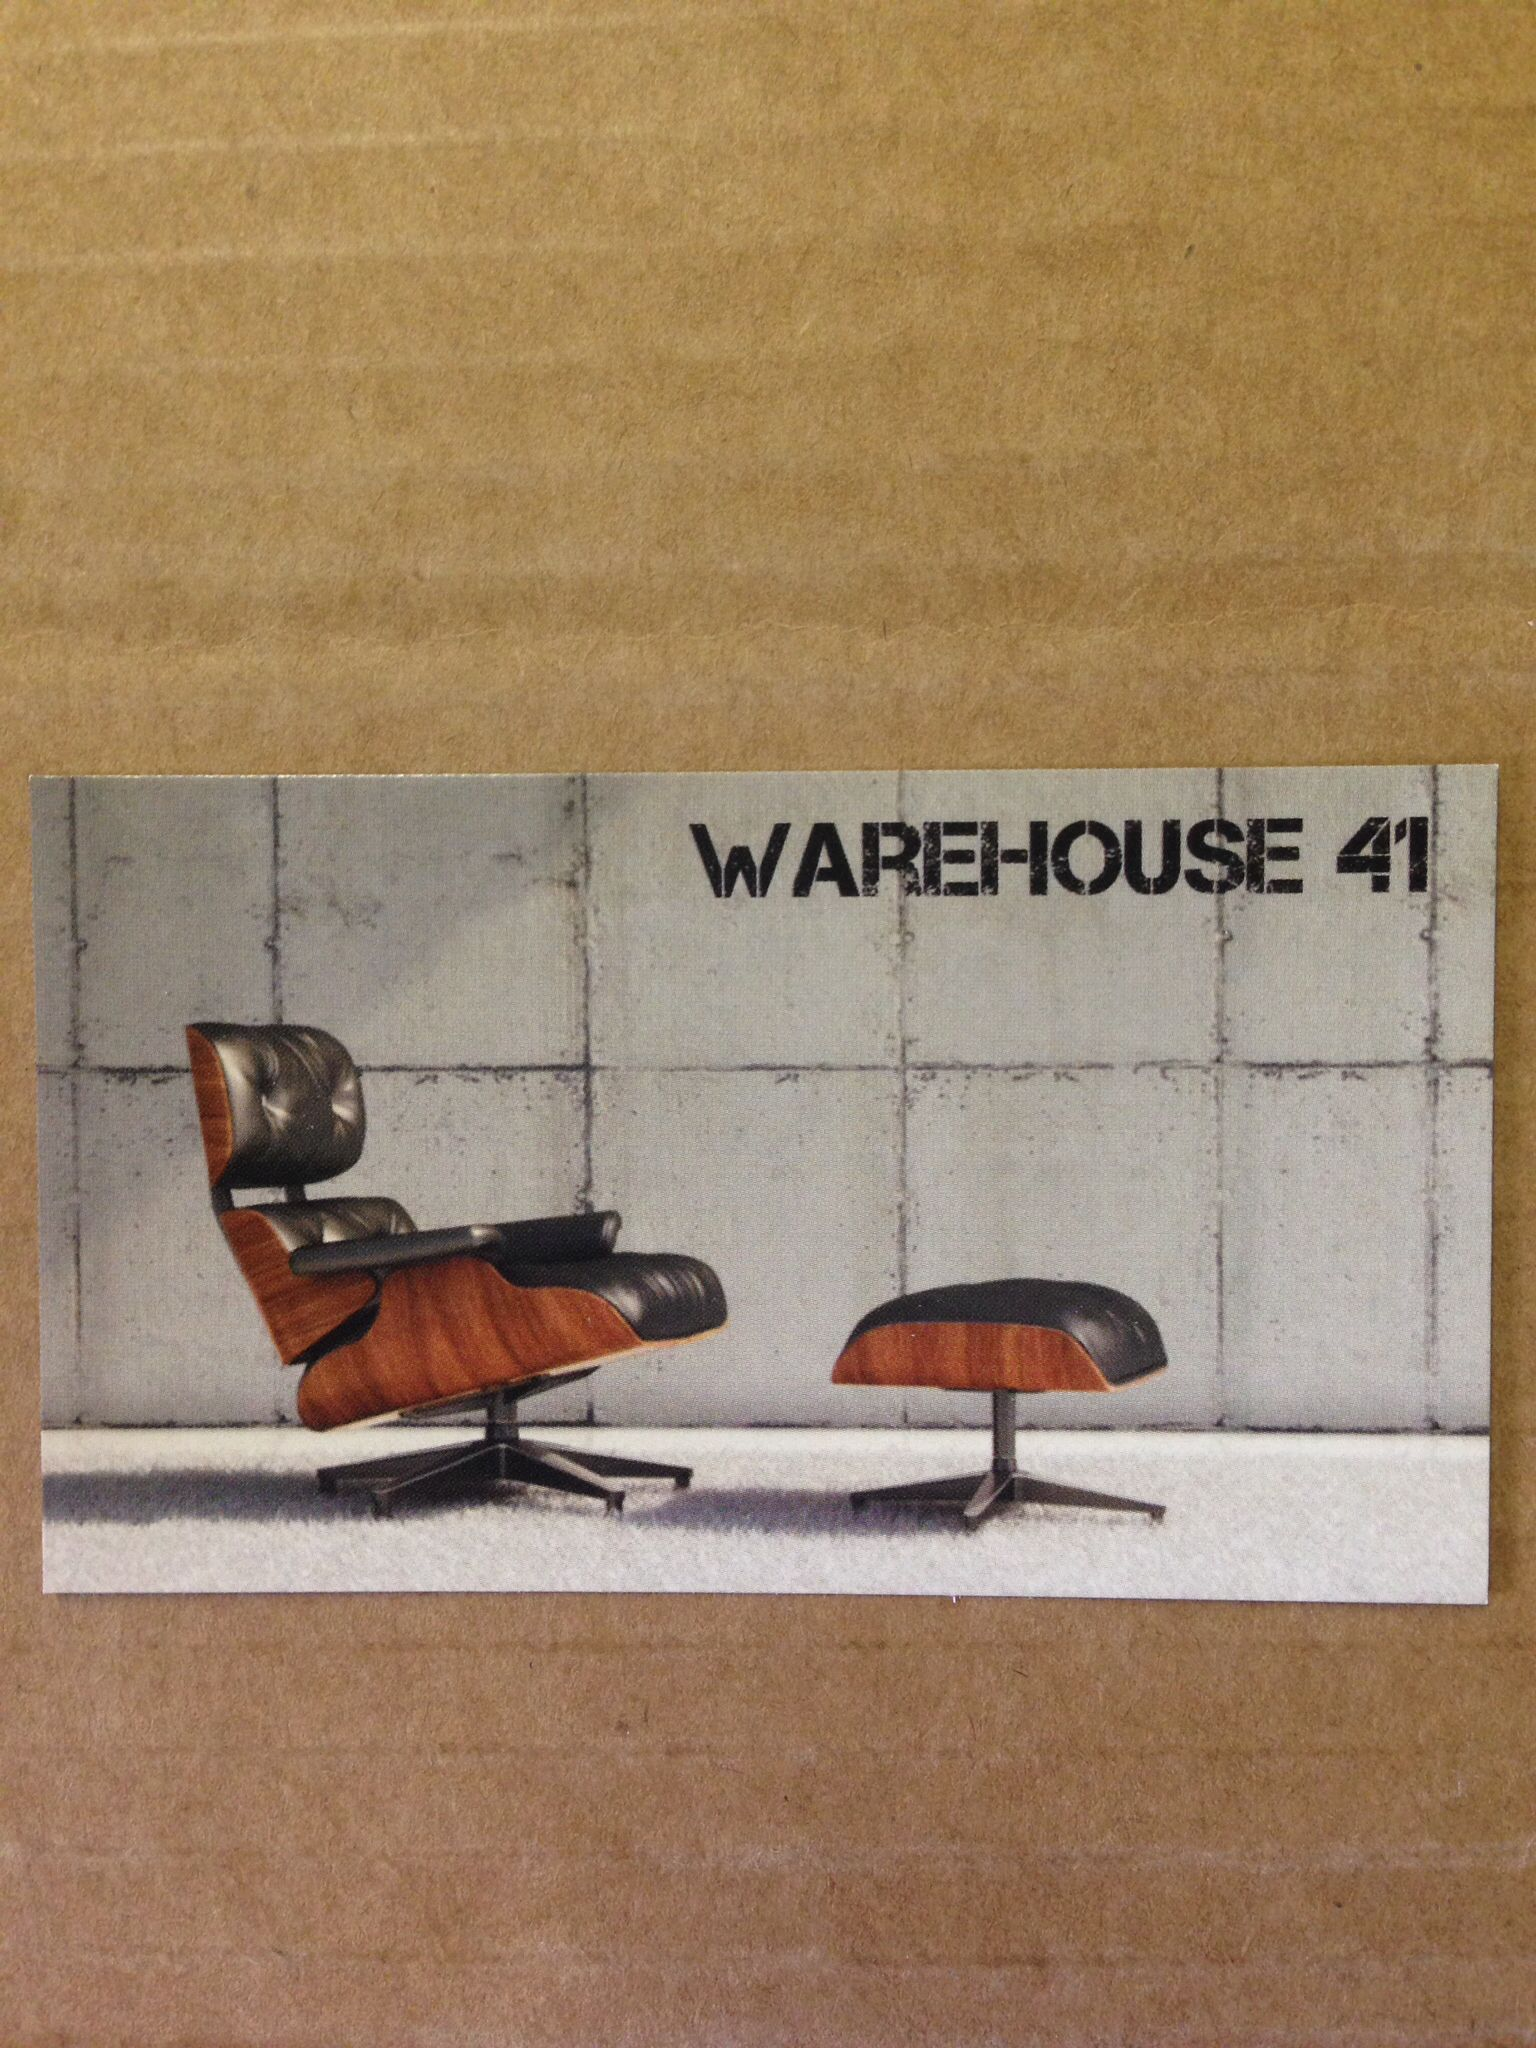 Our New Business Cards Have Arrived Available Warehouse 41 At